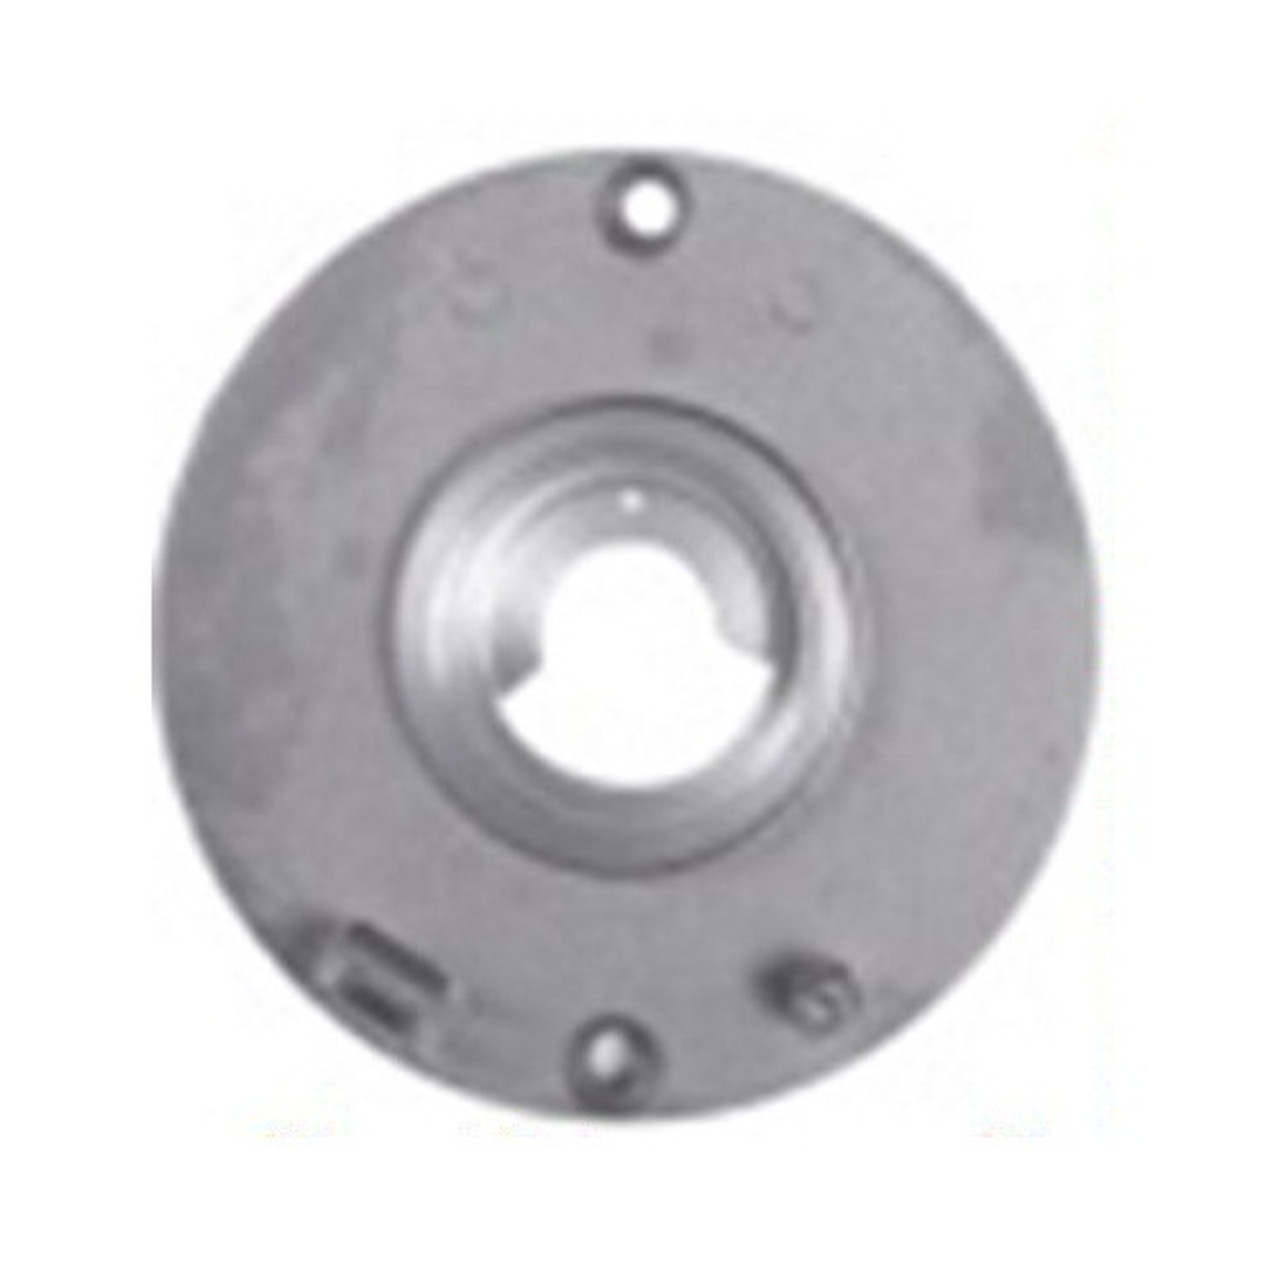 Oil Disk Cover for ATA 110 B/B1 103075